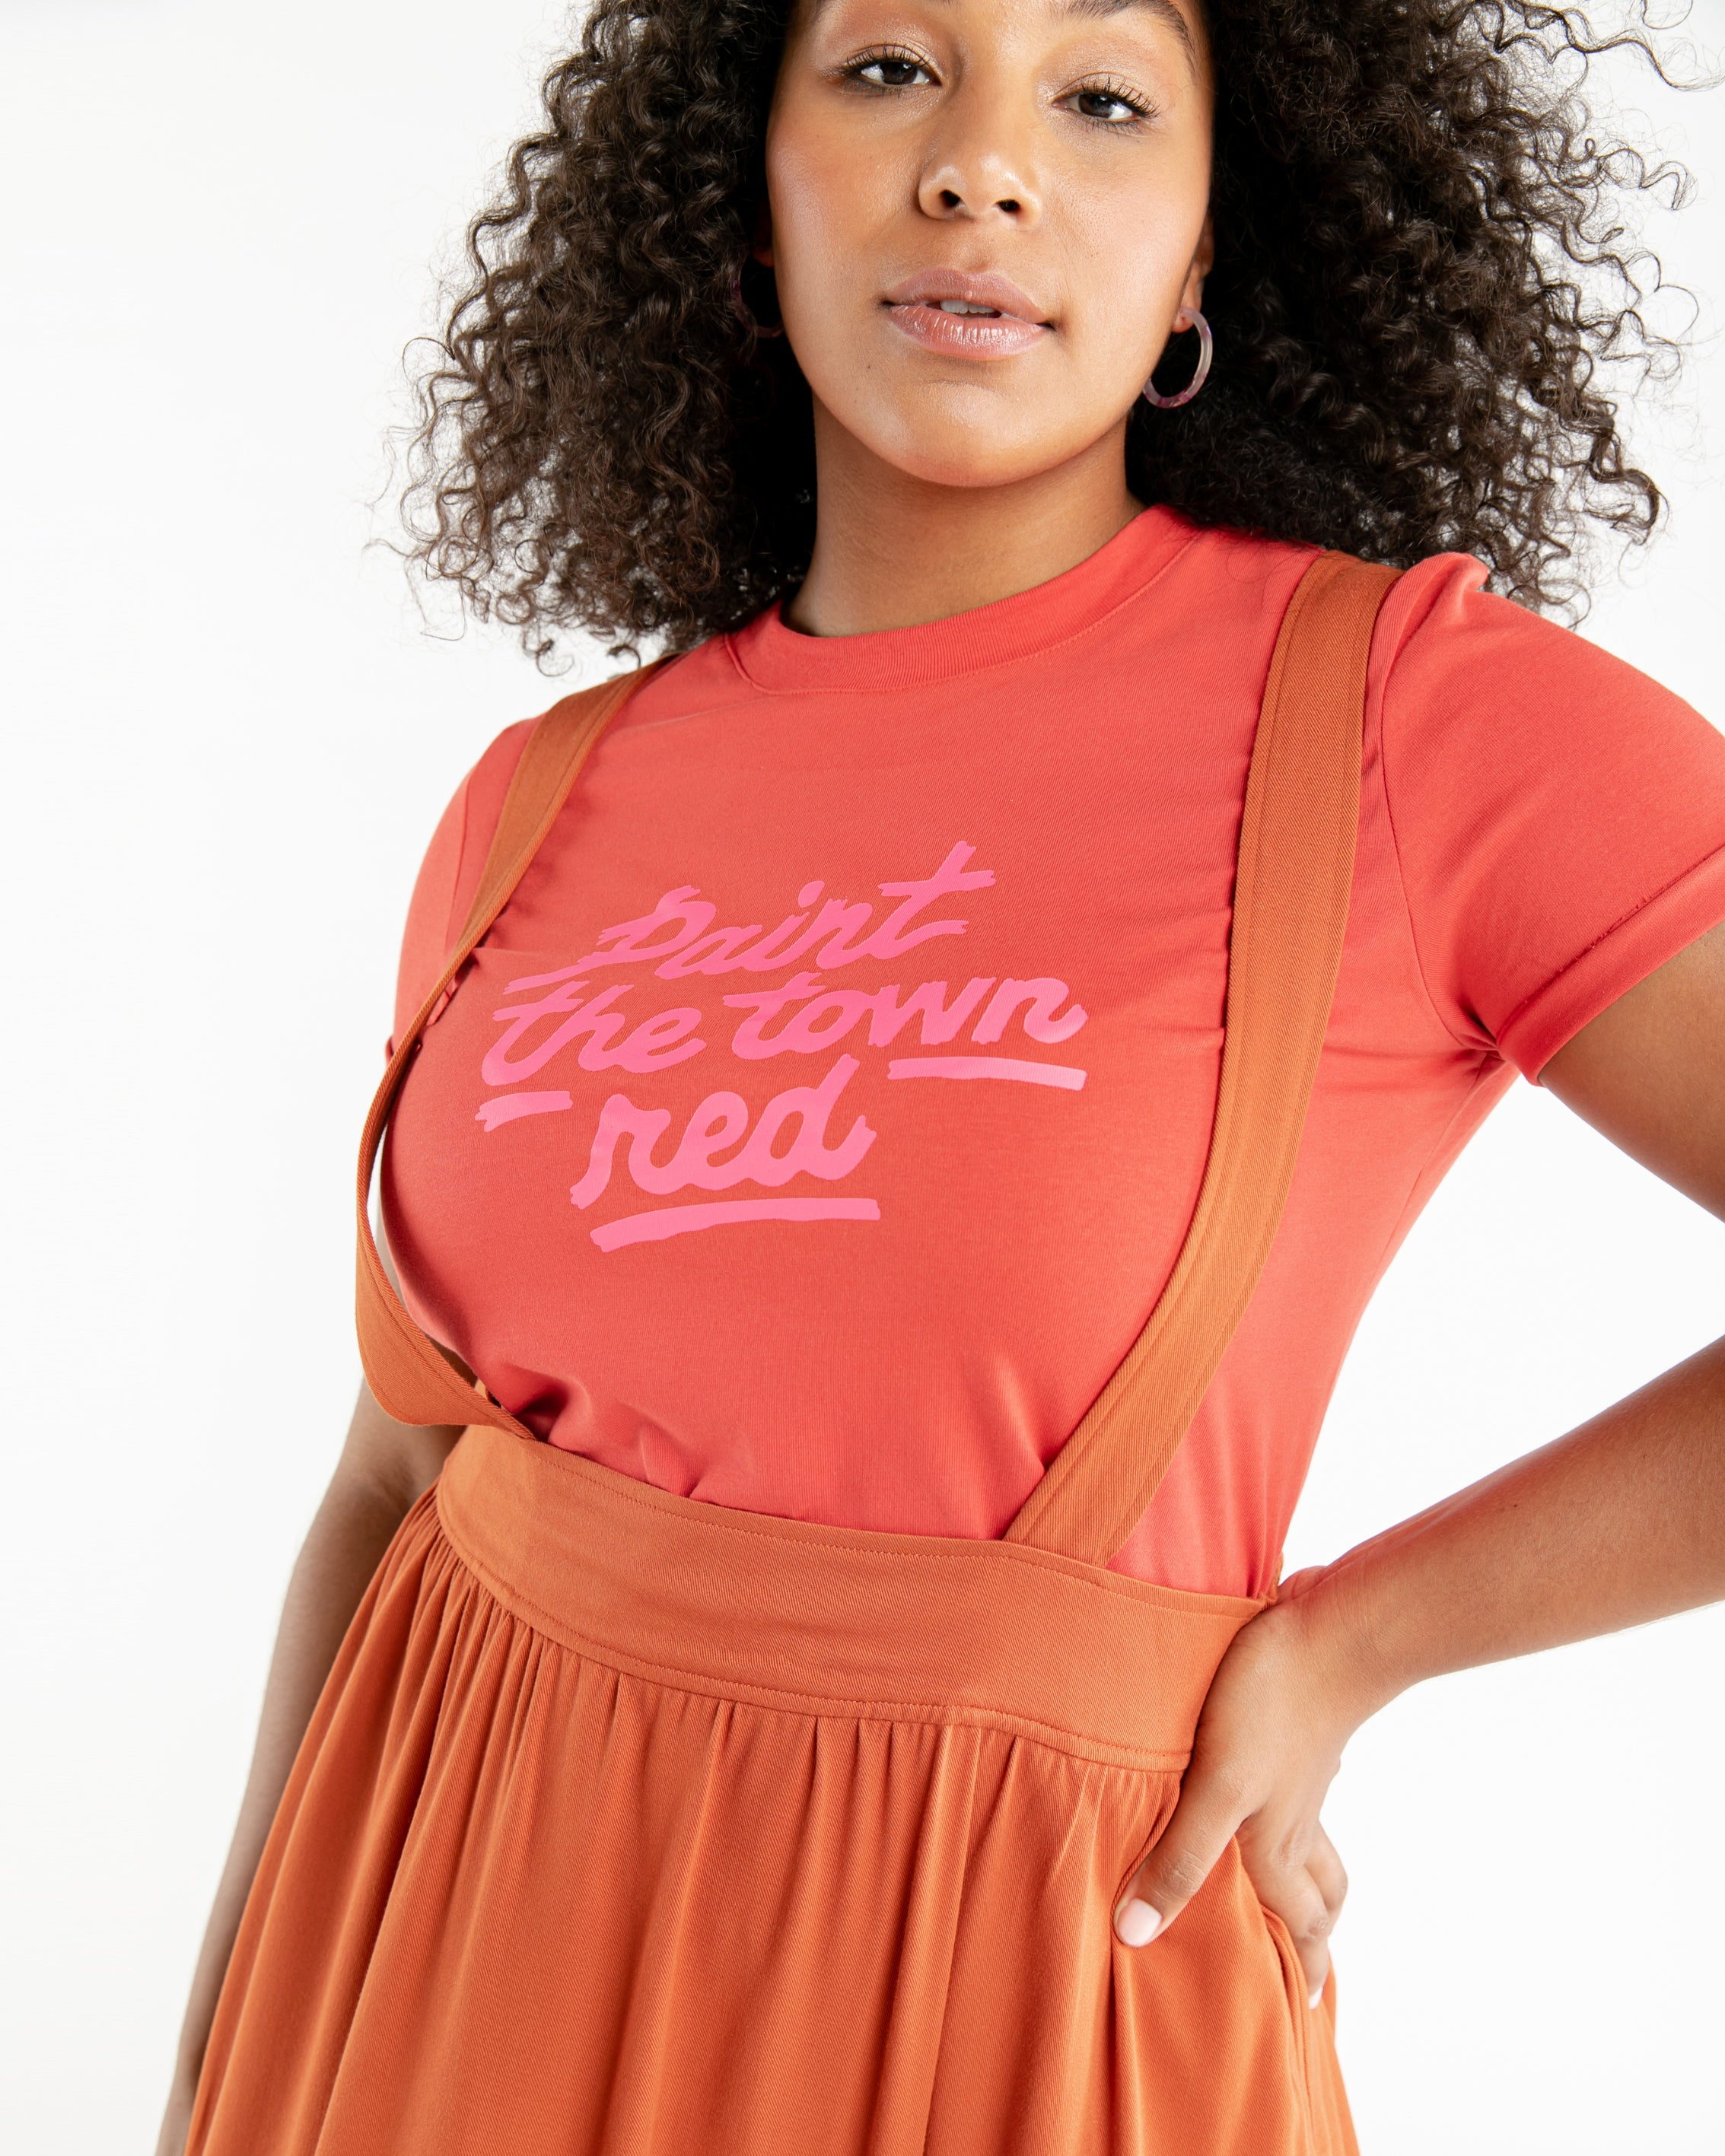 This tee comes in red, with 'Paint The Town Red' printed in pink on the front.